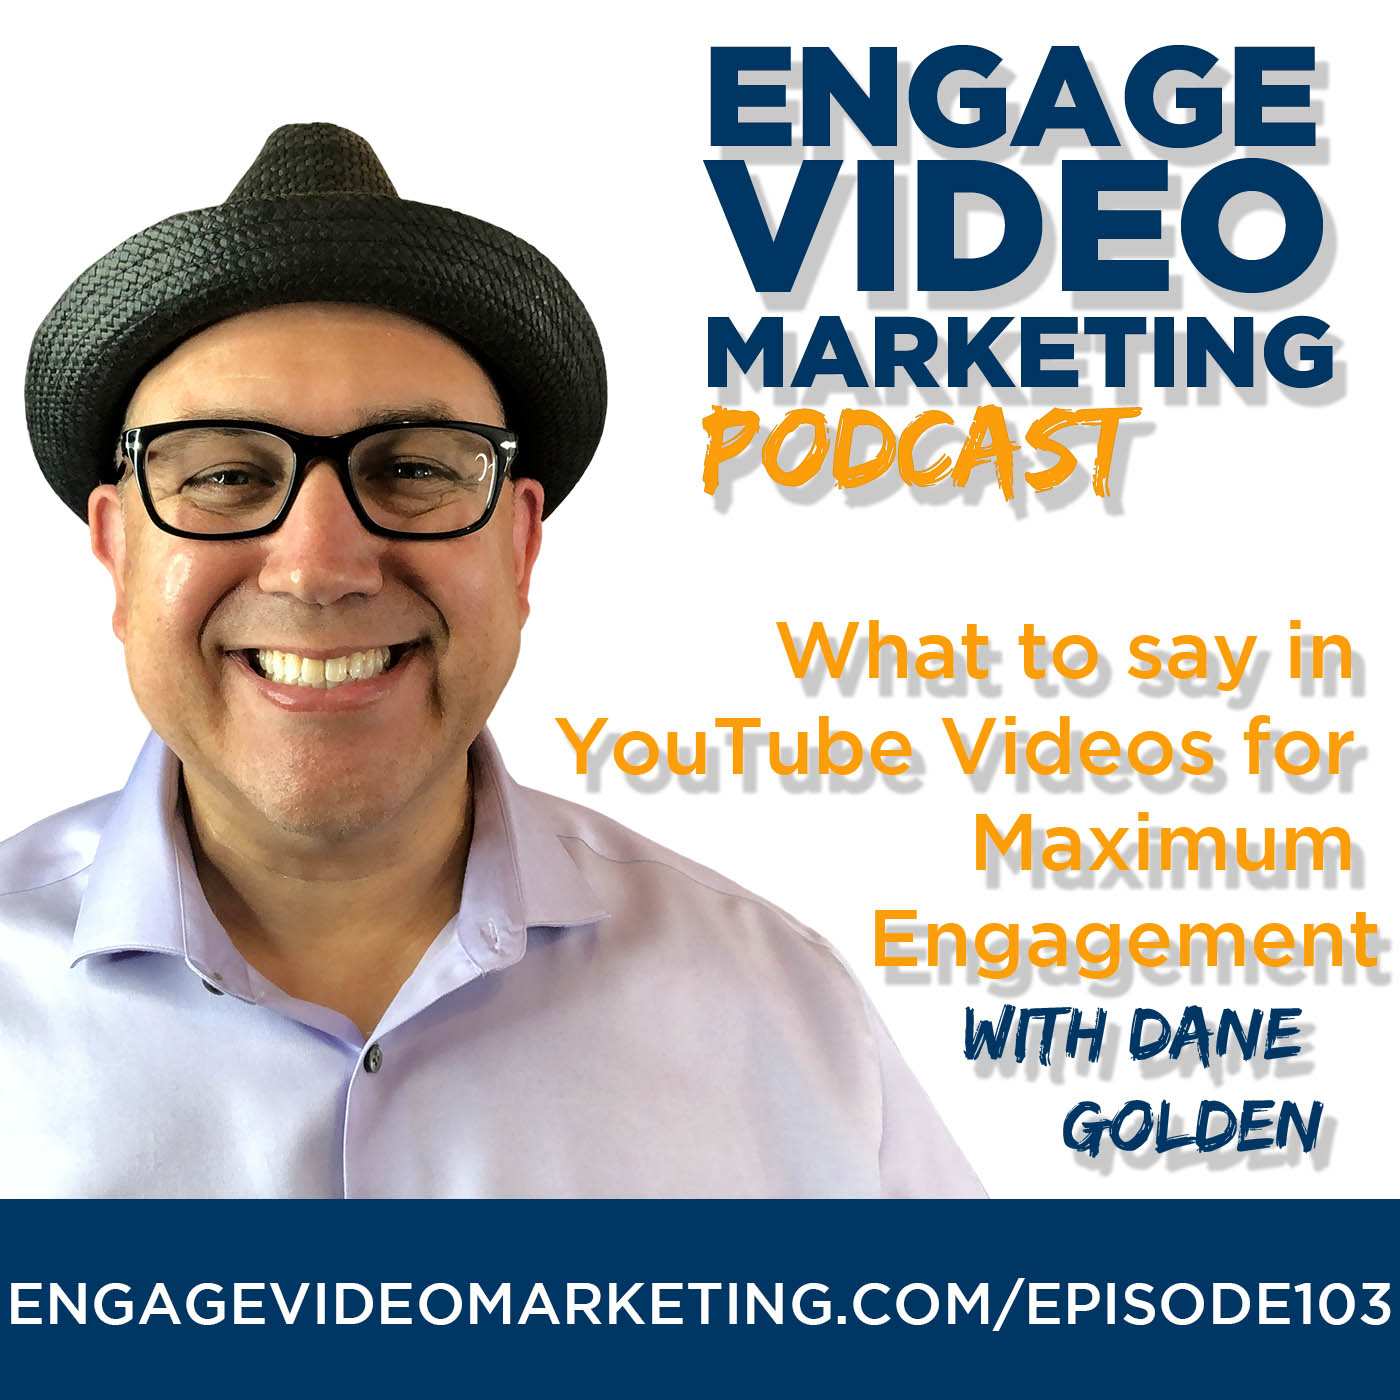 What to say in YouTube Videos for Maximum Engagement with Dane Golden